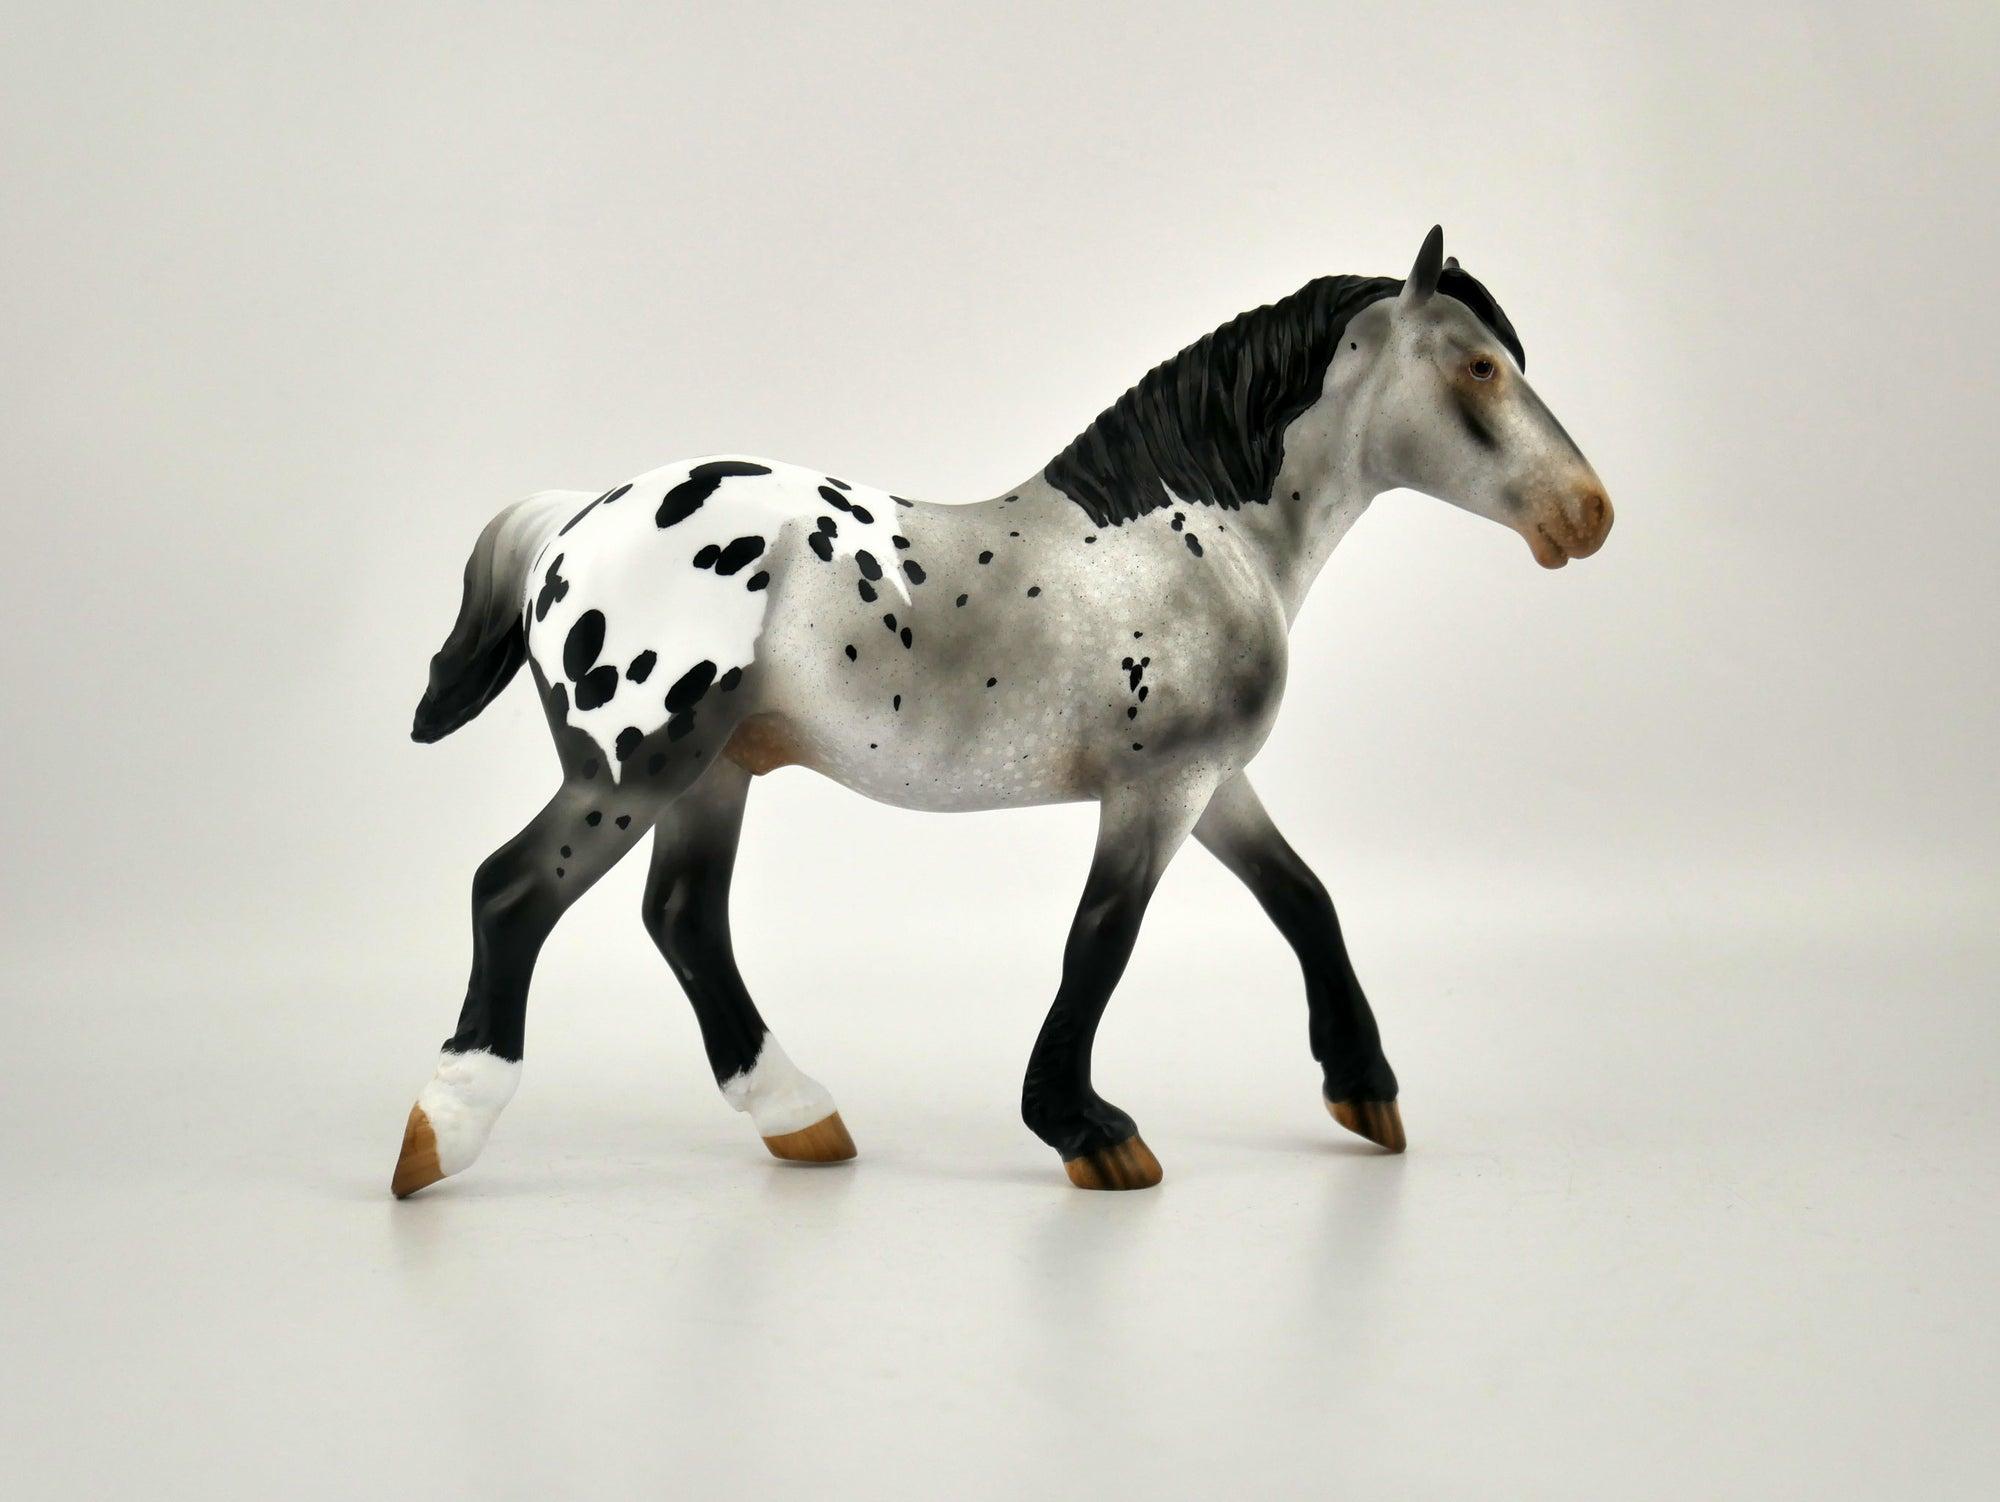 Smokey-OOAK Appaloosa Draft Pebbles by Audrey Dixon 11/18/20